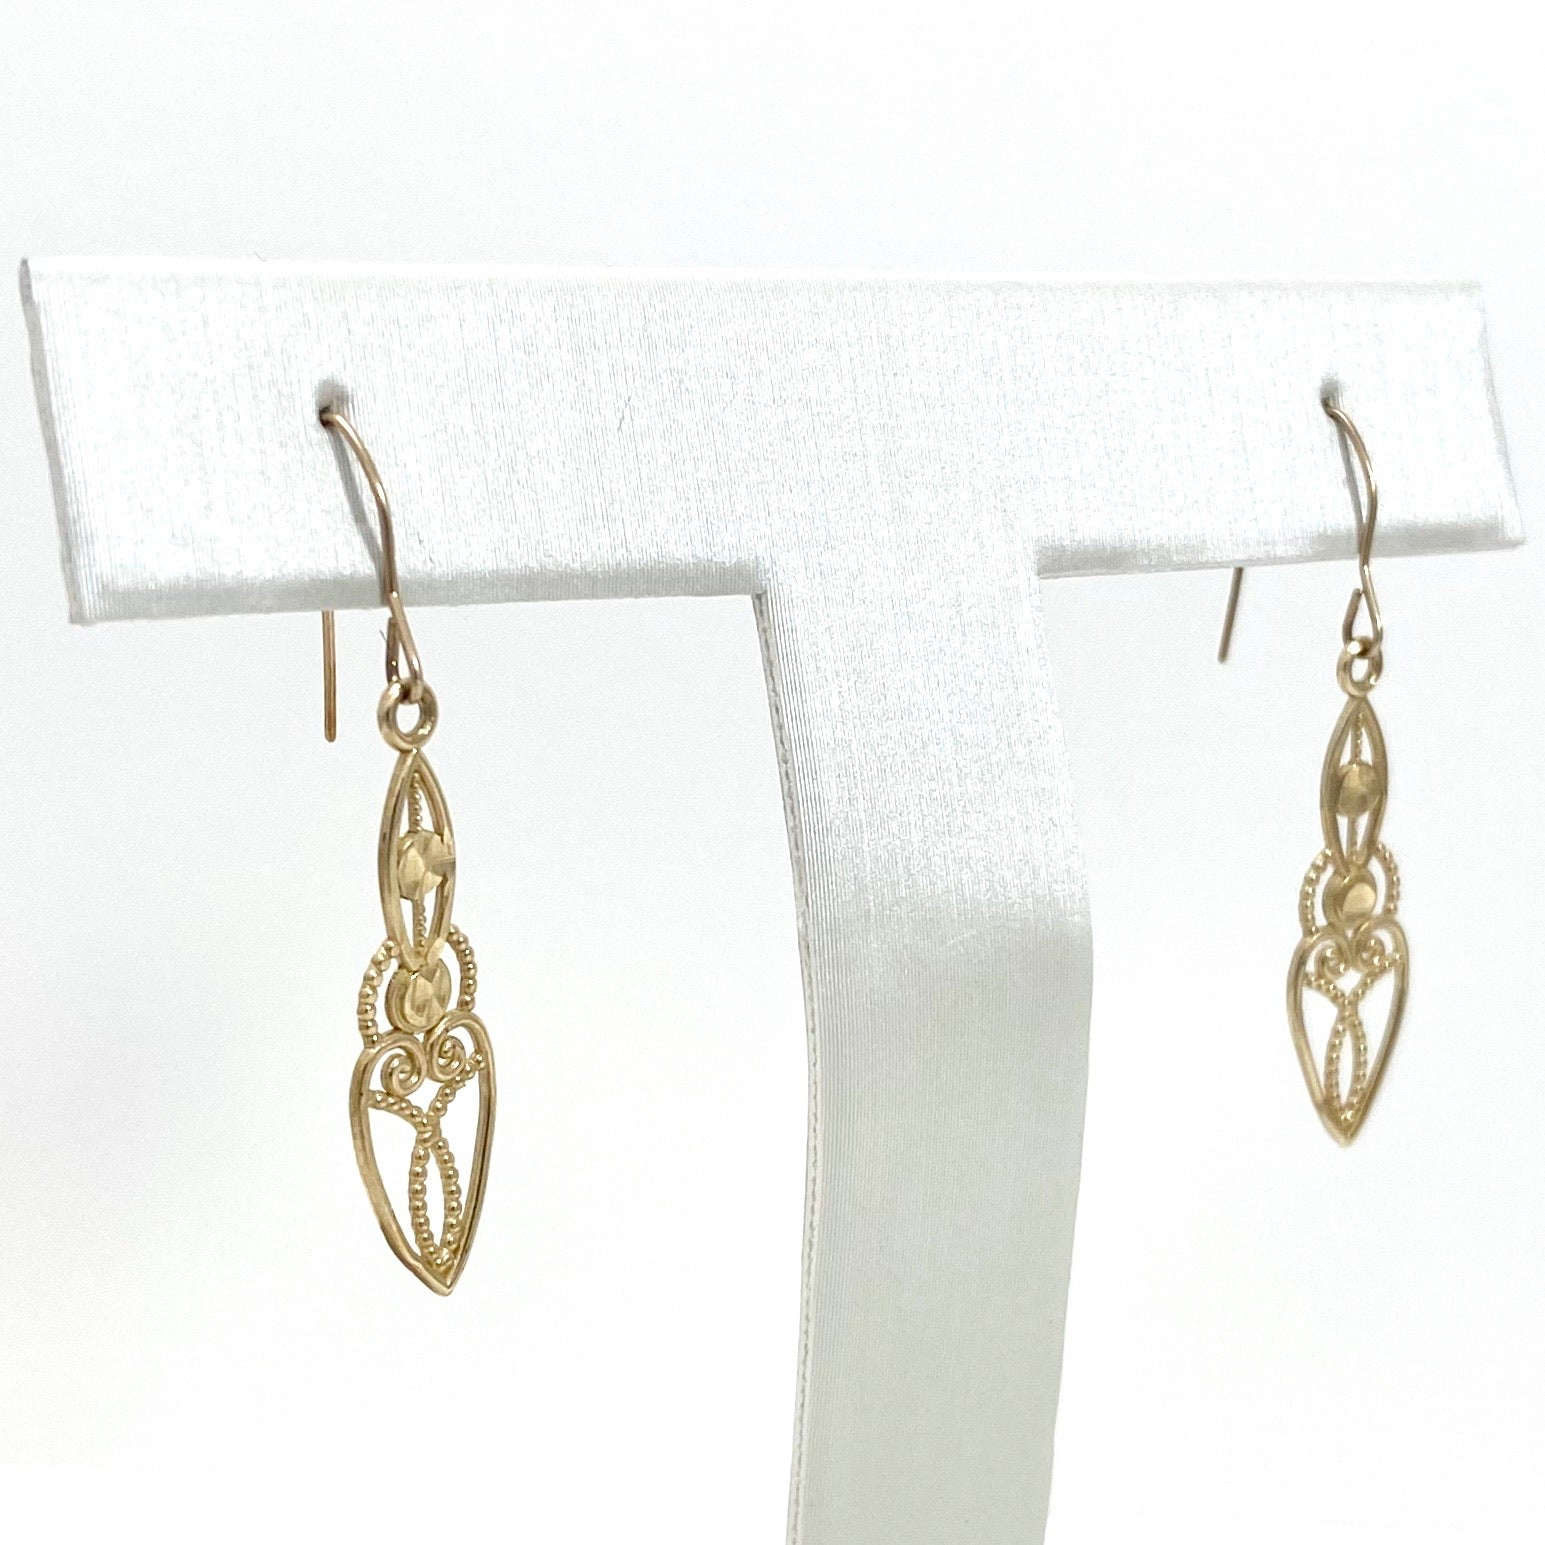 14k Yellow Gold Chandelier Style Hanging Earrings